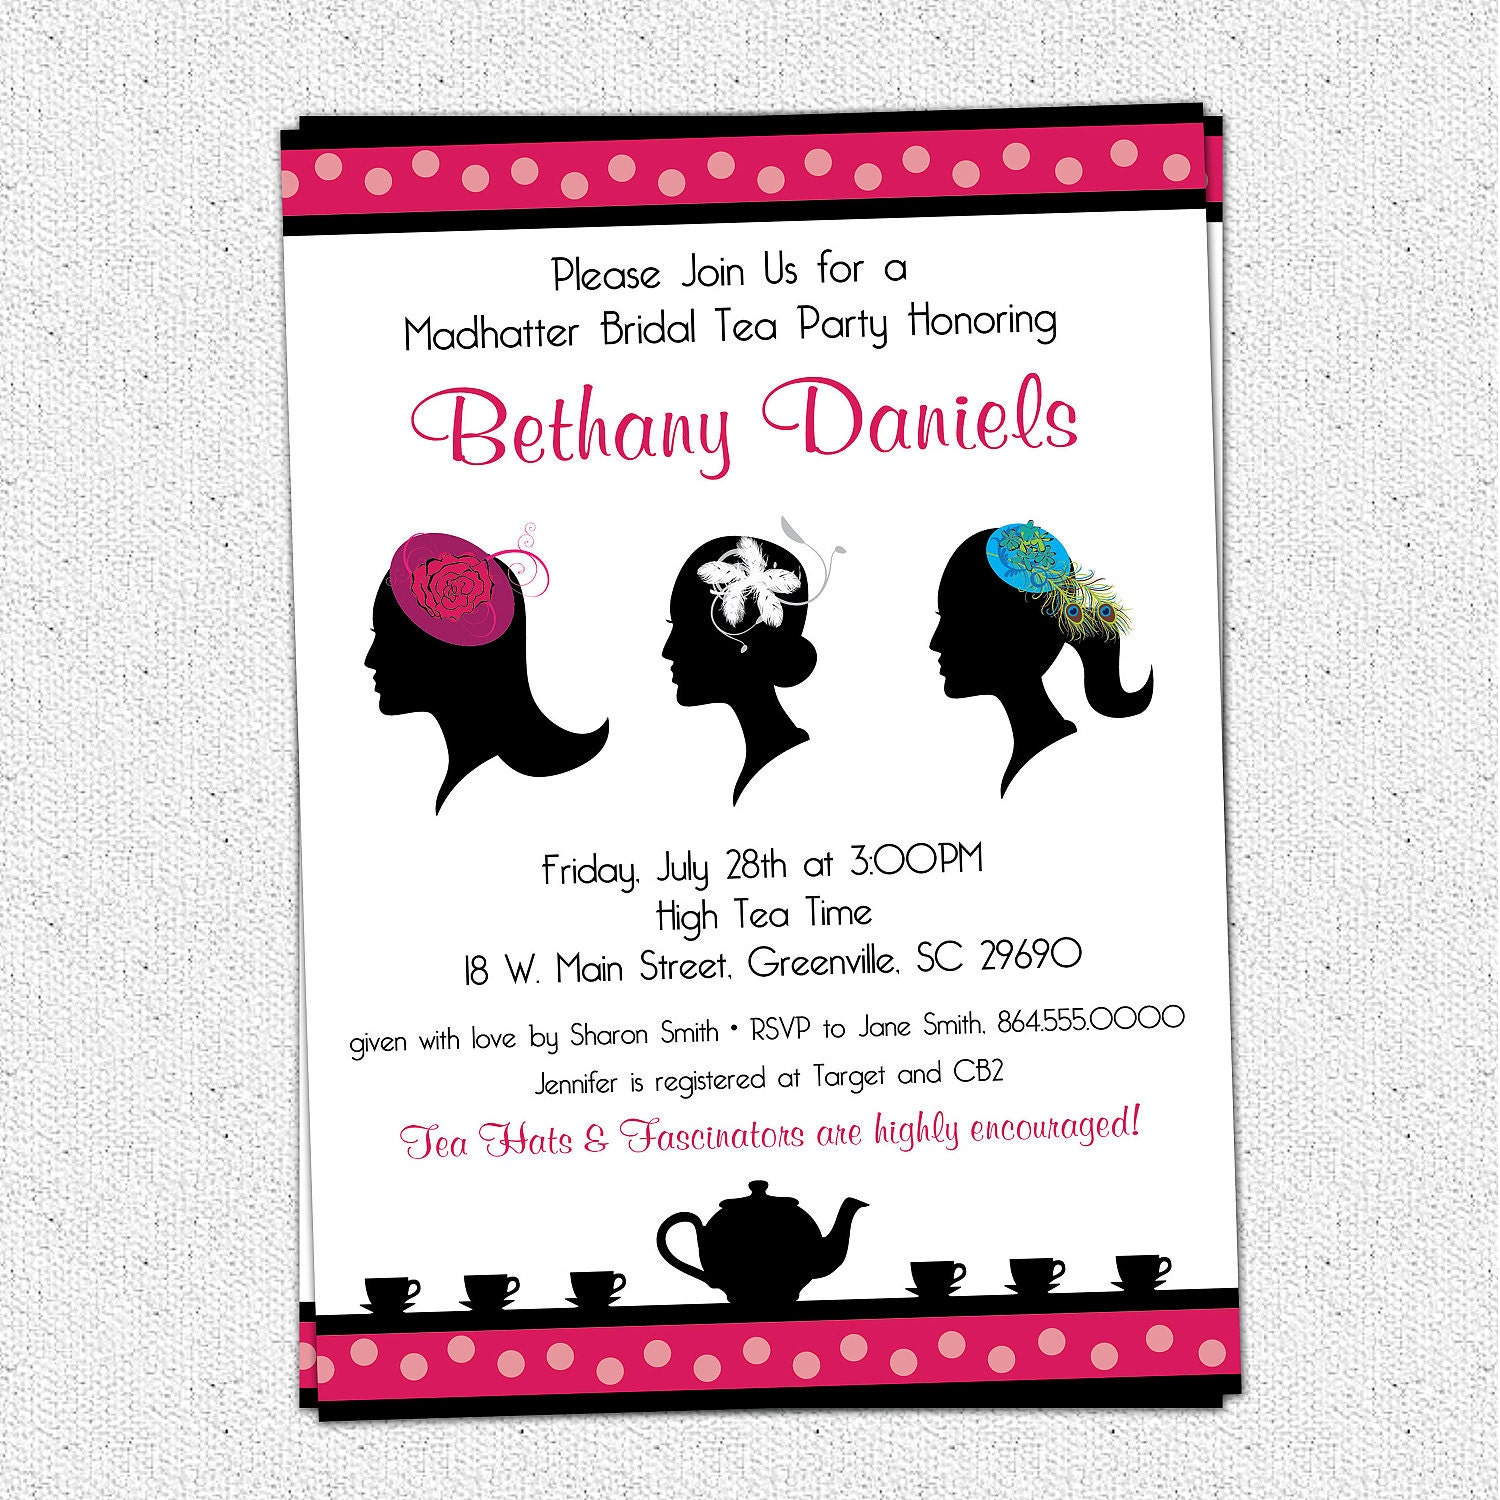 Madhatter Mad Hatter Tea Party Invitation by OhCreativeOne on Etsy